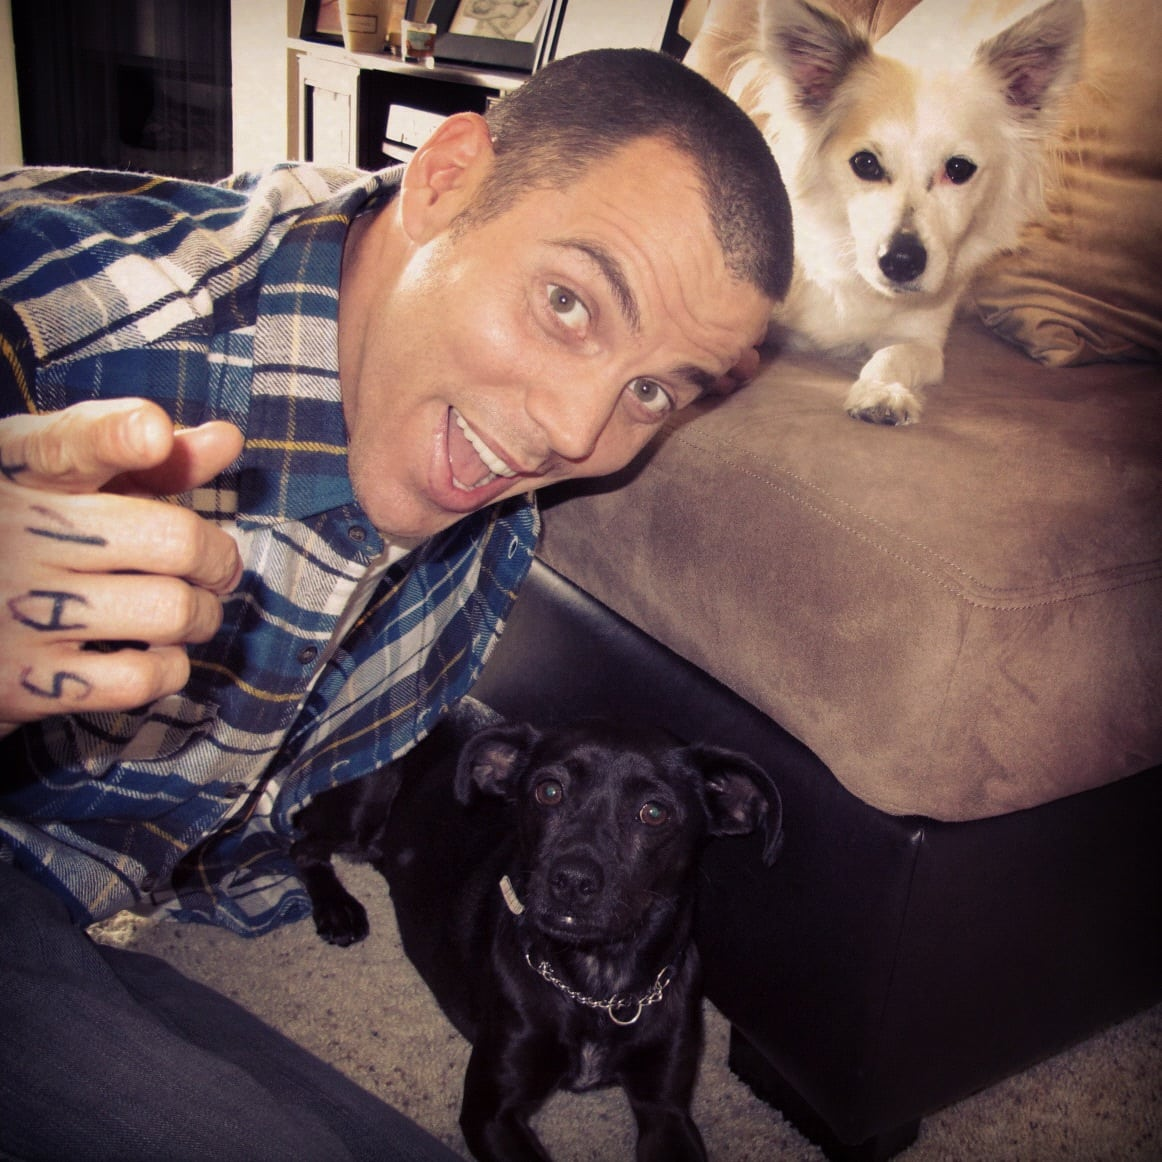 How Adopting Dogs Helped Jackass's Steve-O on the Path to Sobriety